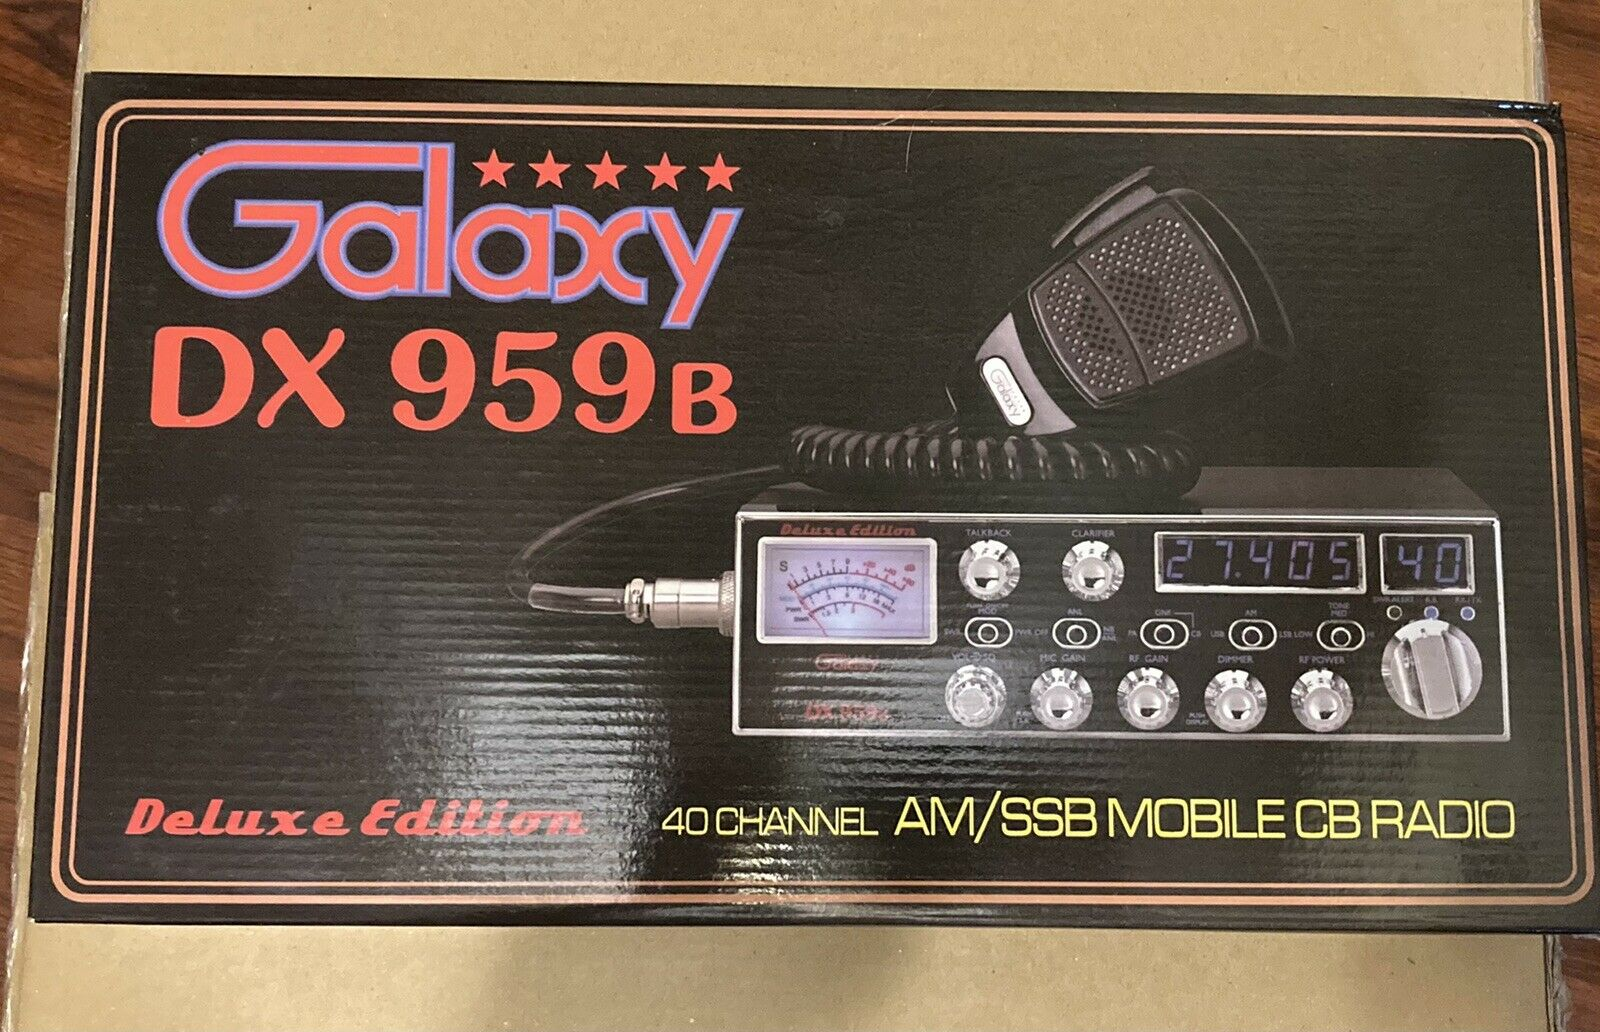 Galaxy DX959B 40 Channel Mobile CB Radio. Available Now for 230.00